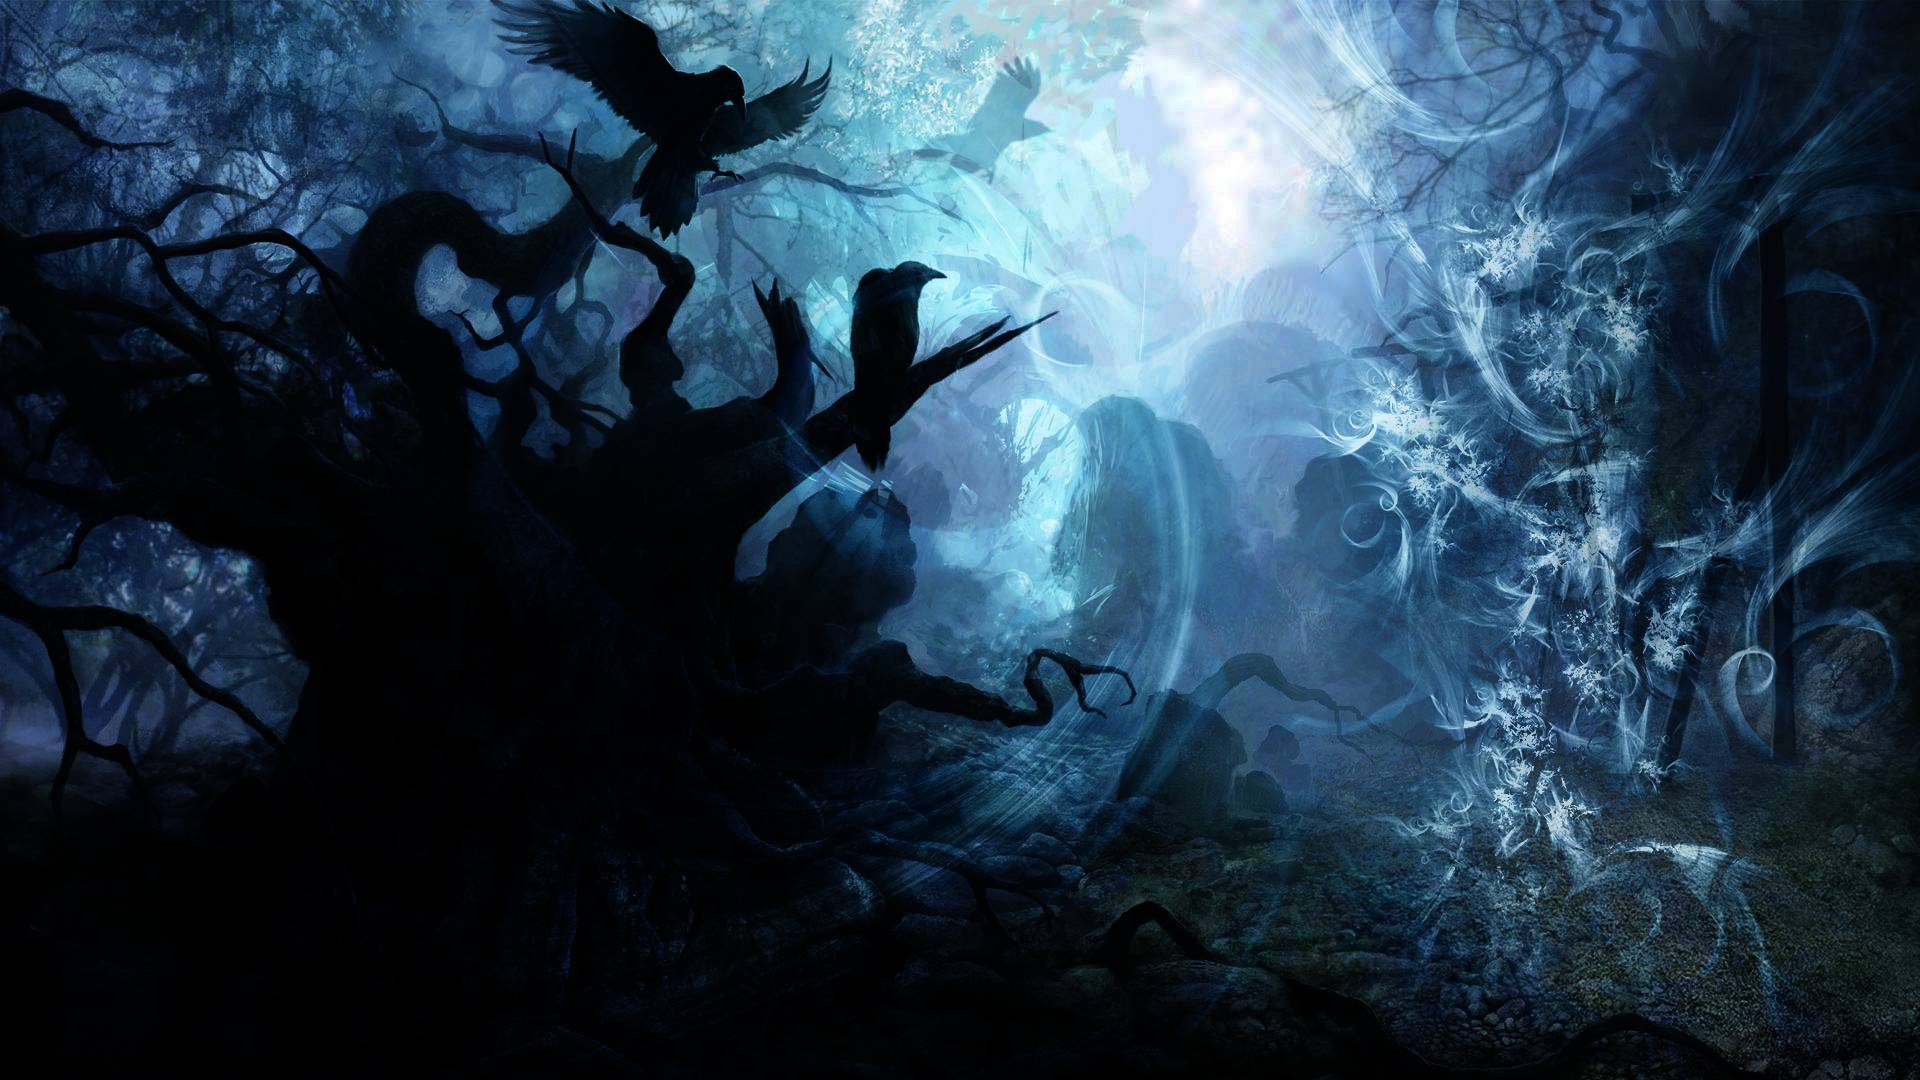 Dark Art Wallpapers - Wallpaper Cave